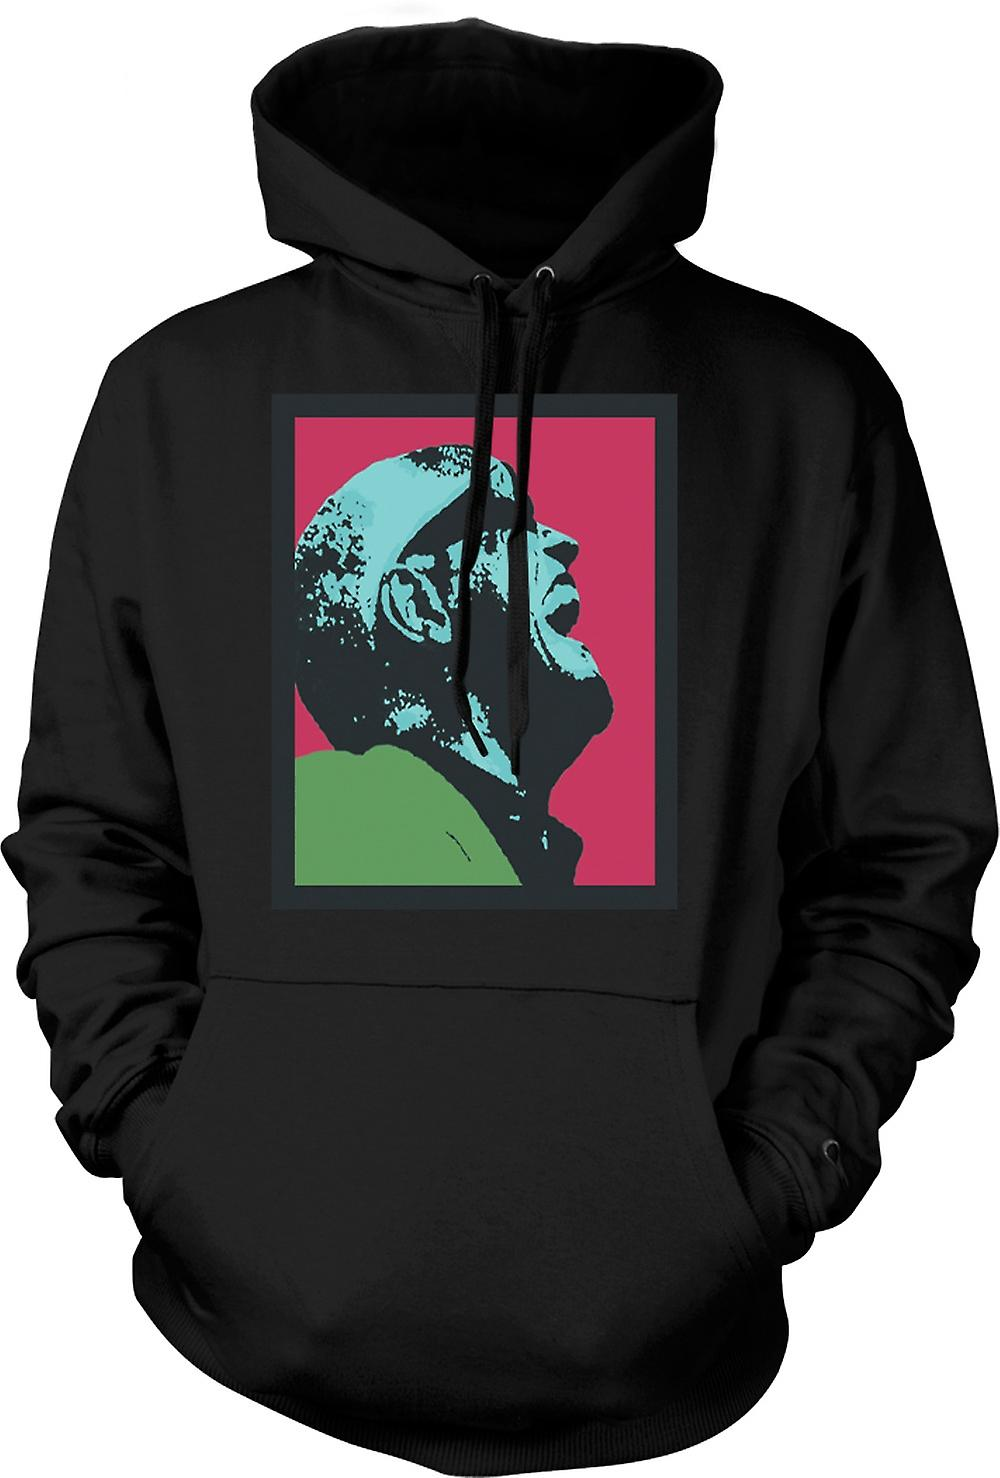 Mens Hoodie - Ray Charles - Pop Art